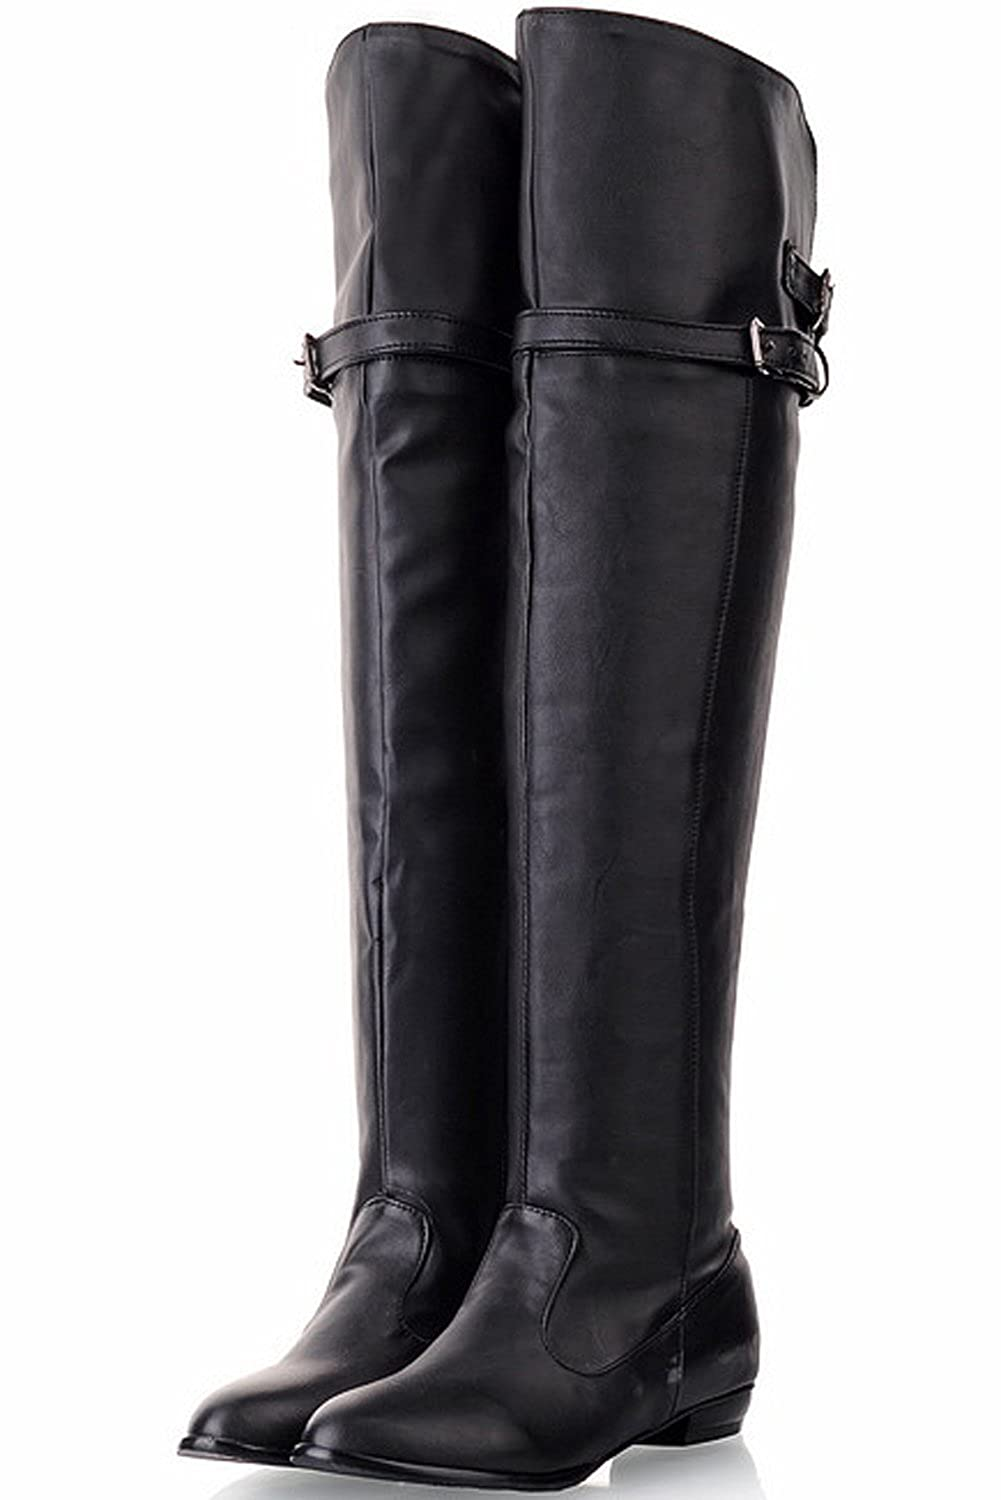 BIGTREE Over The Knee Boots Women Fall Winter Comfortable Buckle Flat Thigh High Boots